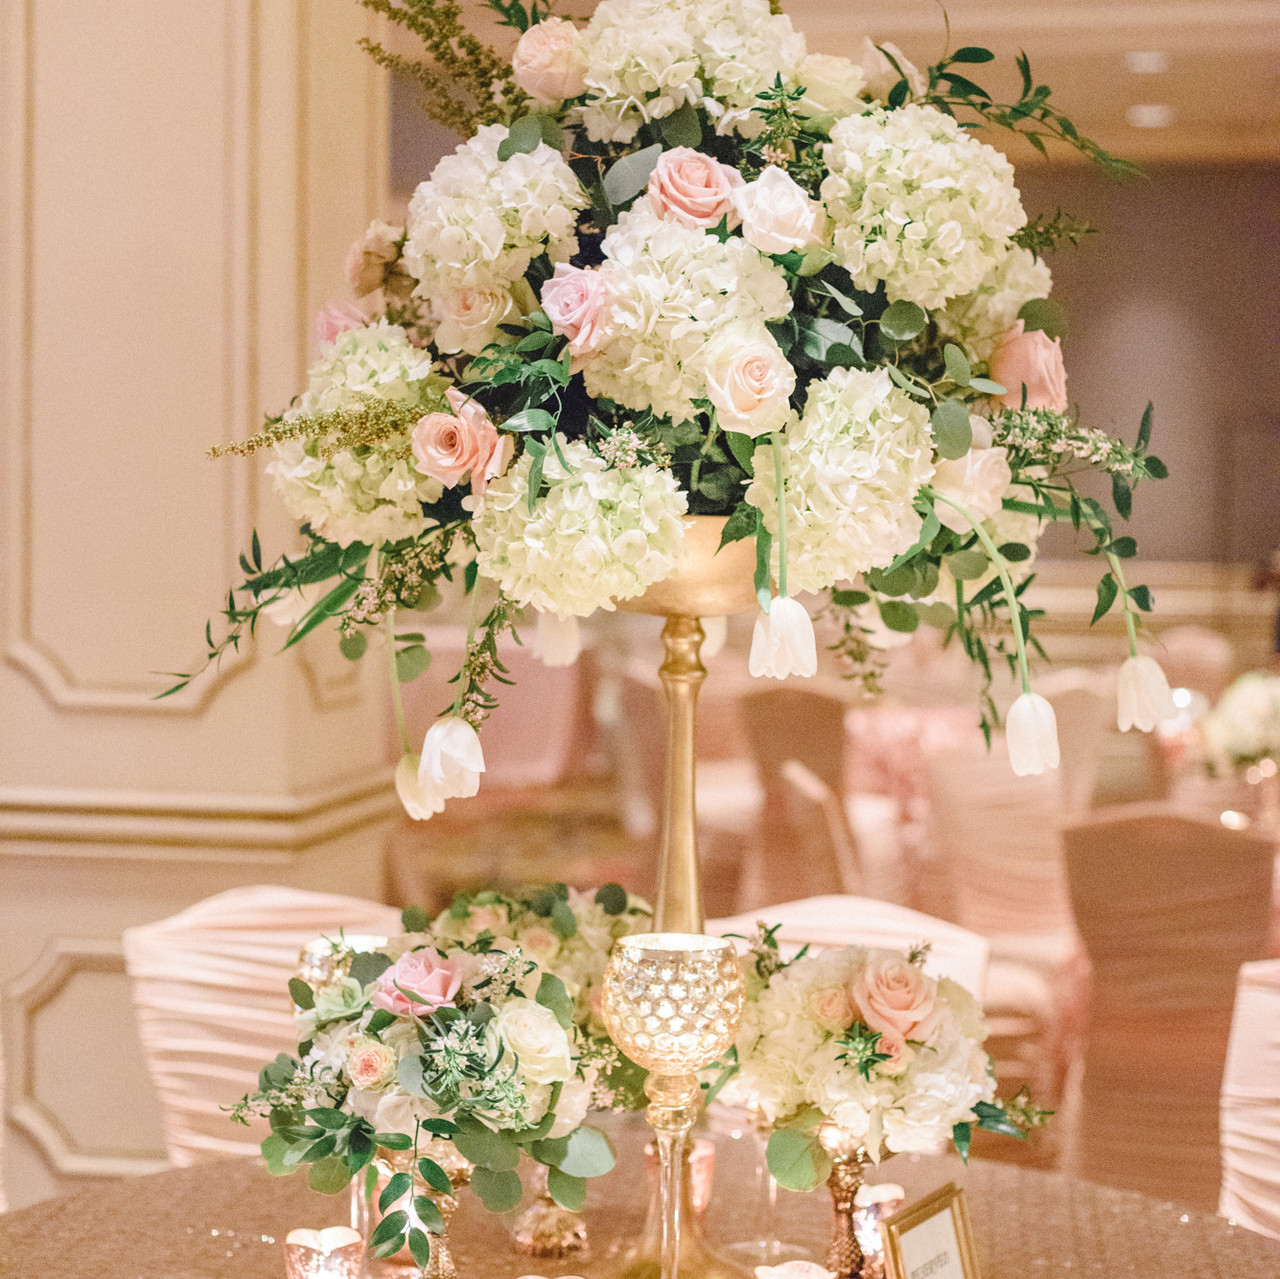 Floral Centerpiece and Linens